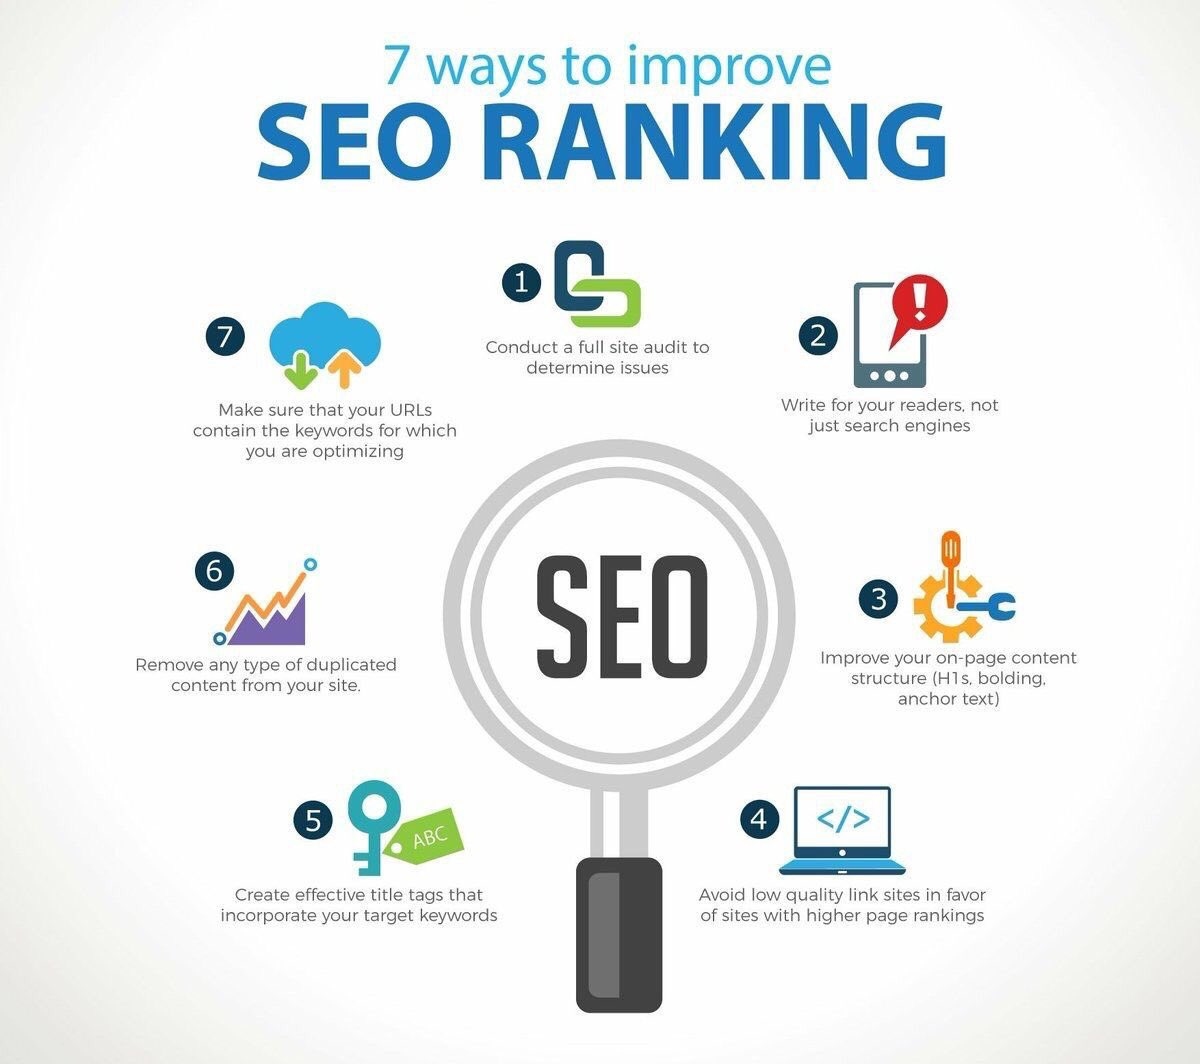 How to #SEO   http:// bit.ly/seo2018  &nbsp;    #makeyourownlane #startups #GrowthHacking #defstar5 #DigitalMarketing #socialmedia #BigData #marketing<br>http://pic.twitter.com/zWidfPayD2